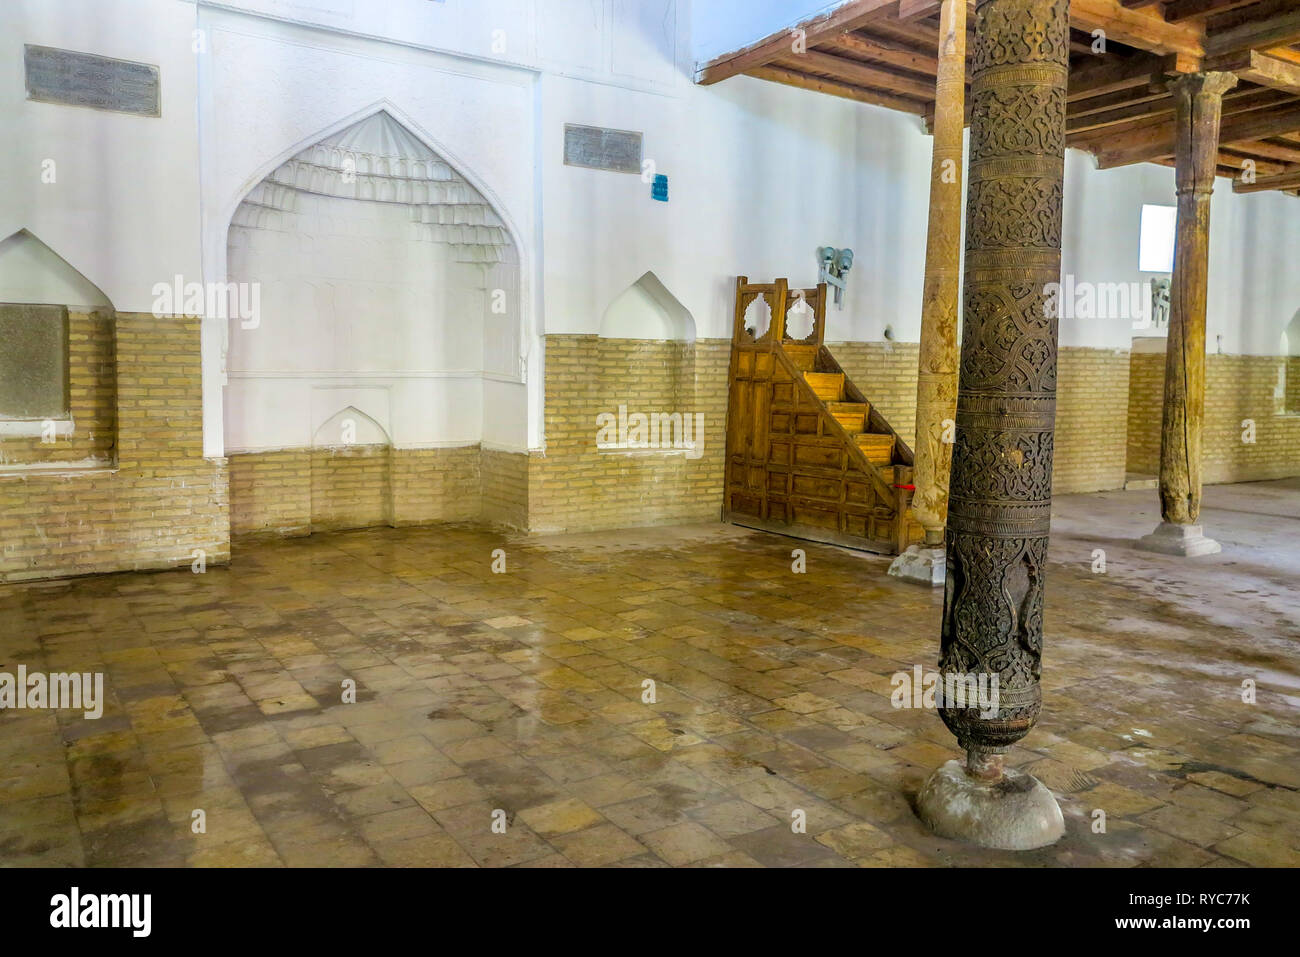 Khiva Old Town Juma Mosque Interior Wooden Columns at Prayers Hall with Mihrab - Stock Image